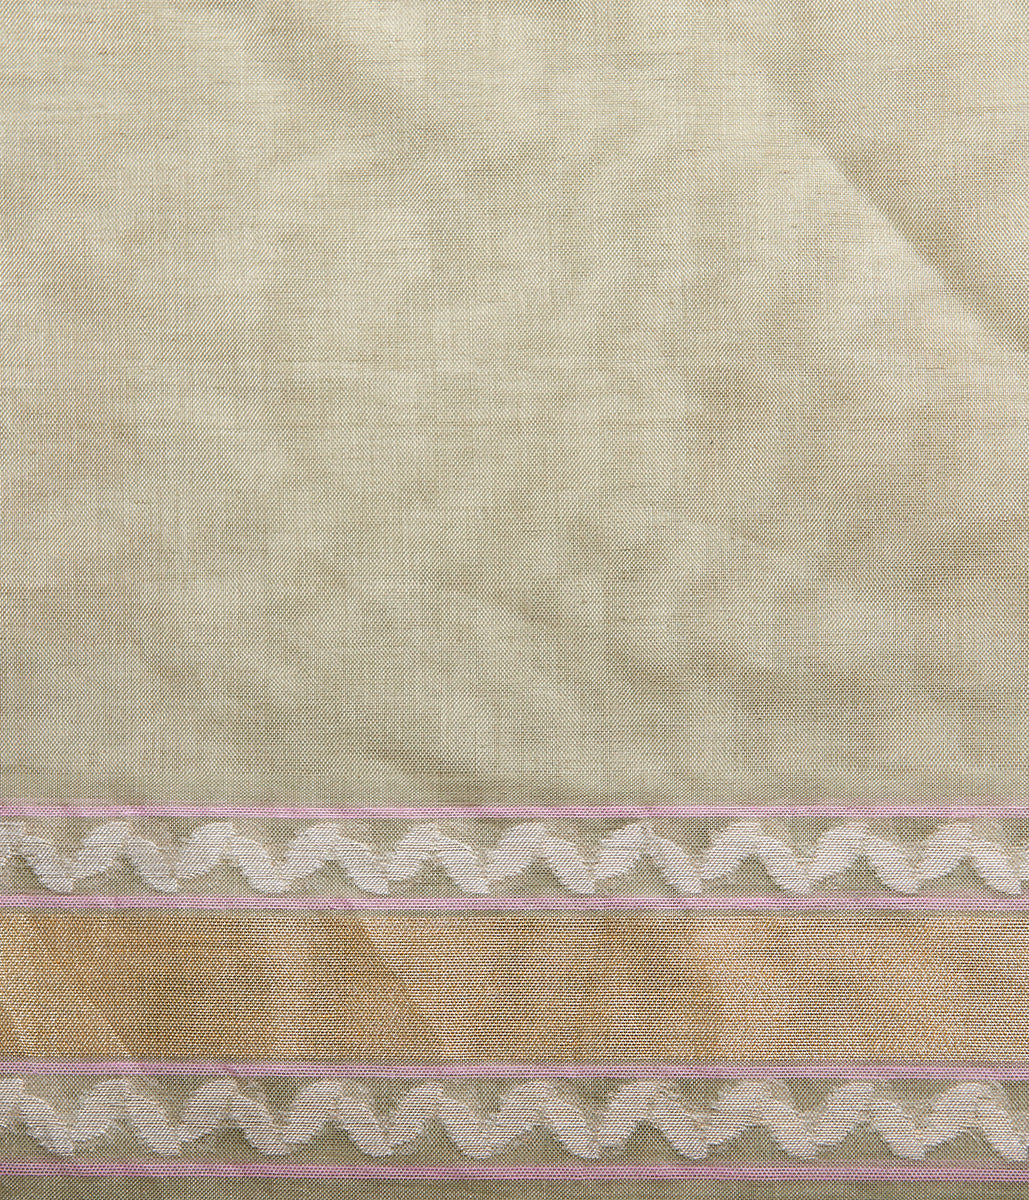 Handwoven cotton banarasi in pistachio green with all over floral jaal woven in jamdani weave